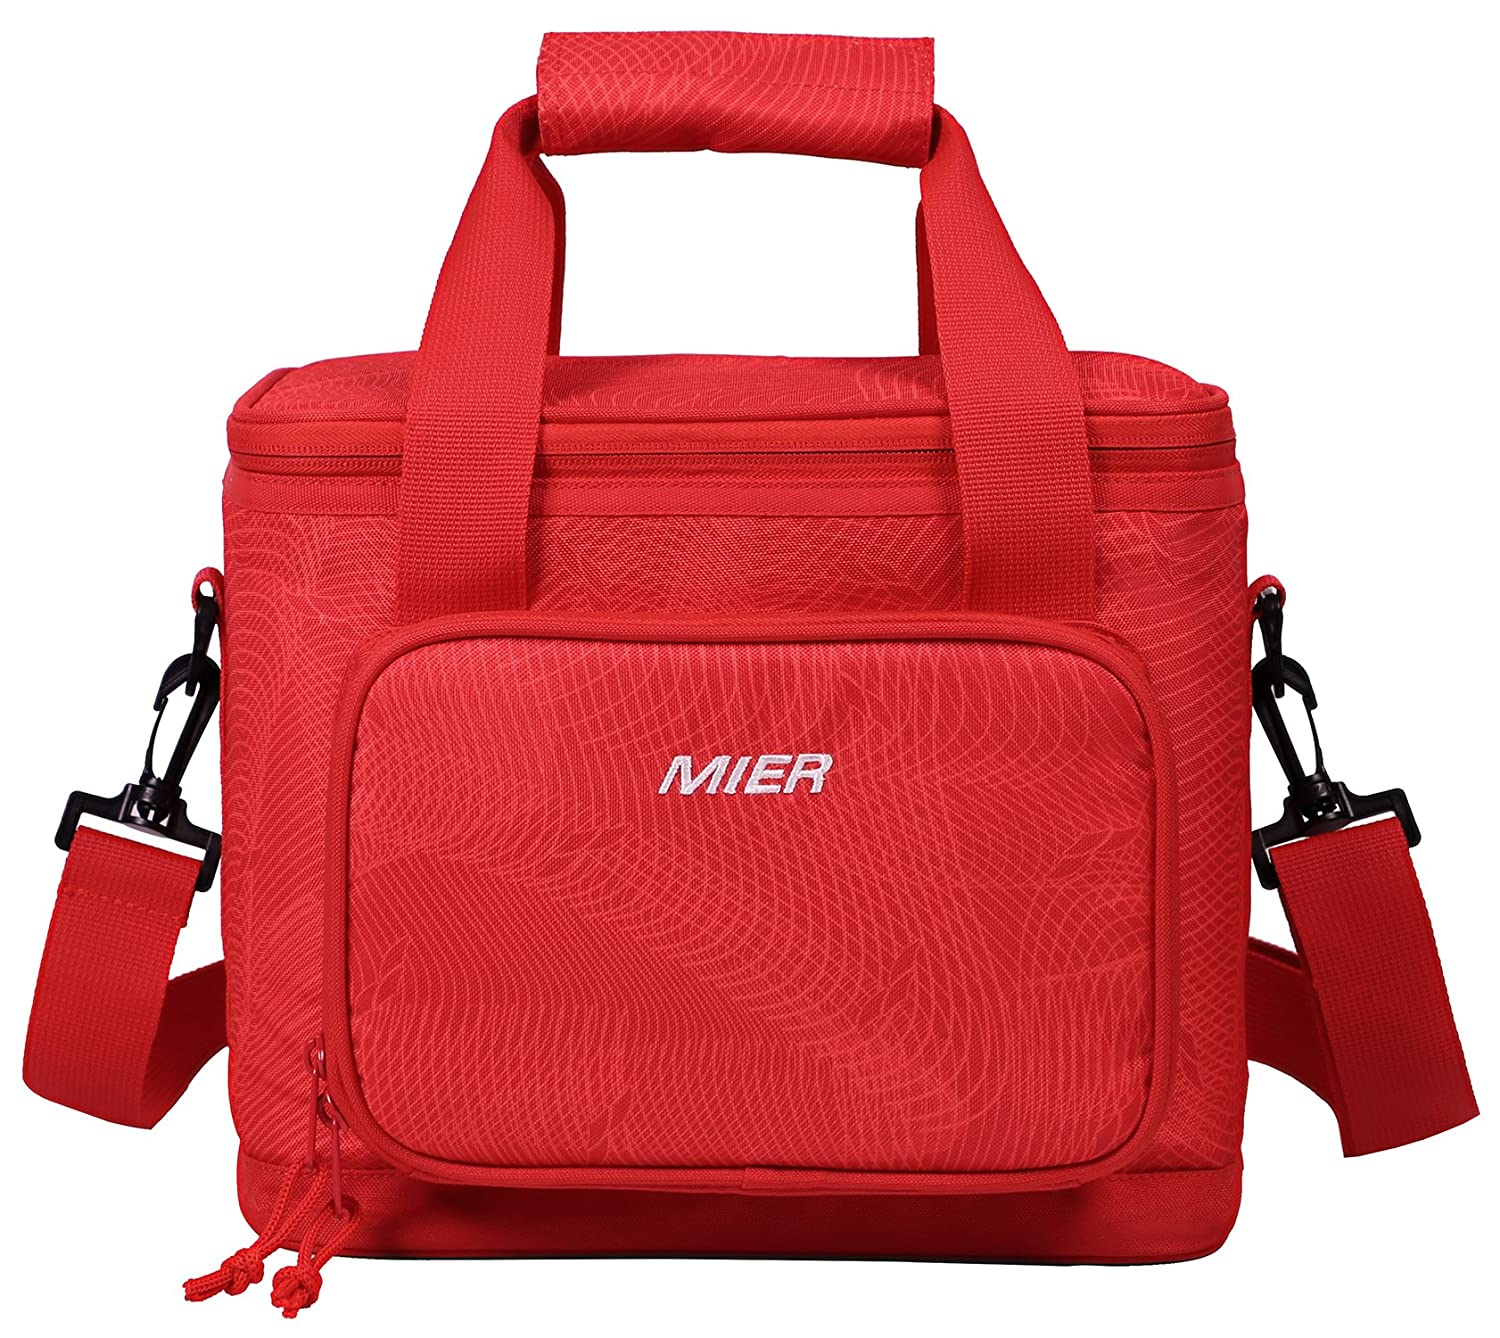 MIER 16 Can Large Insulated Lunch Bag for Women and Men, Soft Leakproof Liner, Blue SYNCHKG093531